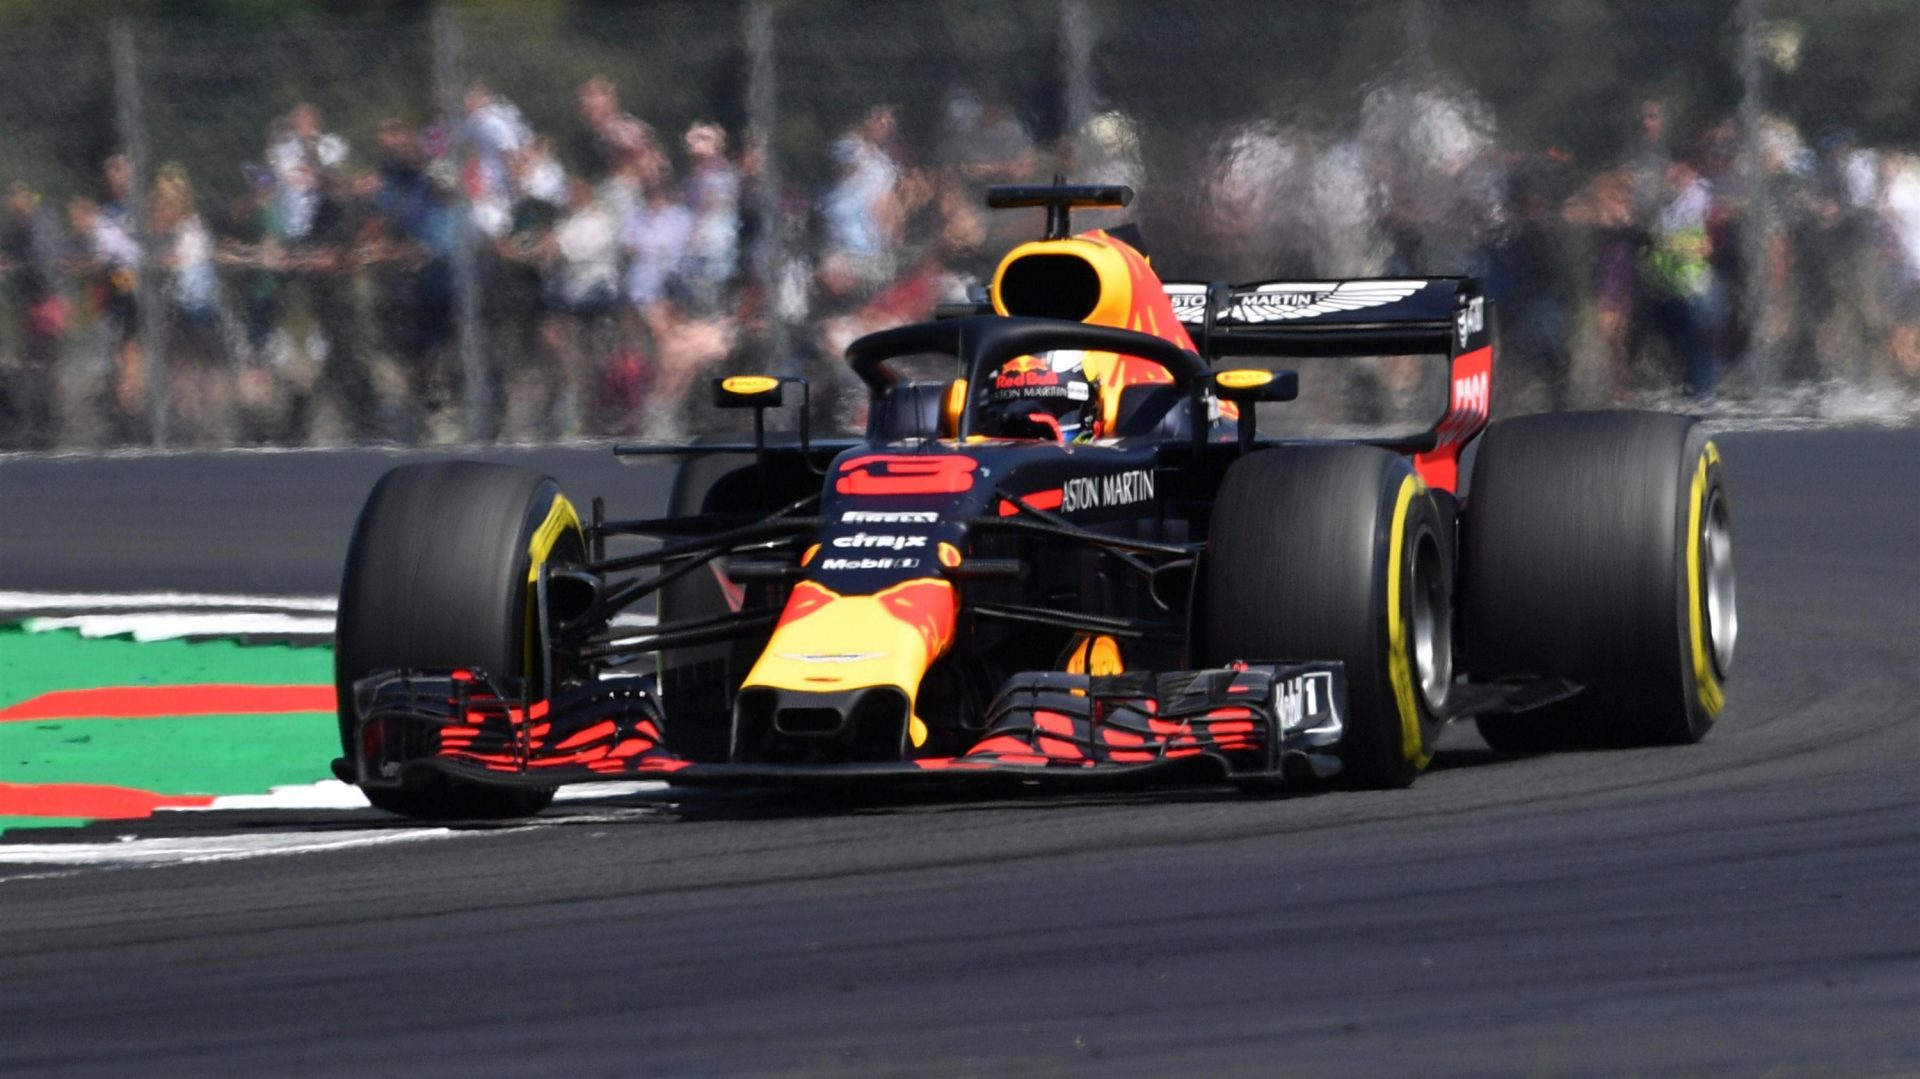 https://www.formula1.com/content/fom-website/en/latest/features/2018/7/gallery--the-best-images-from-great-britain/_jcr_content/featureContent/manual_gallery/image16.img.1920.medium.jpg/1530873545321.jpg